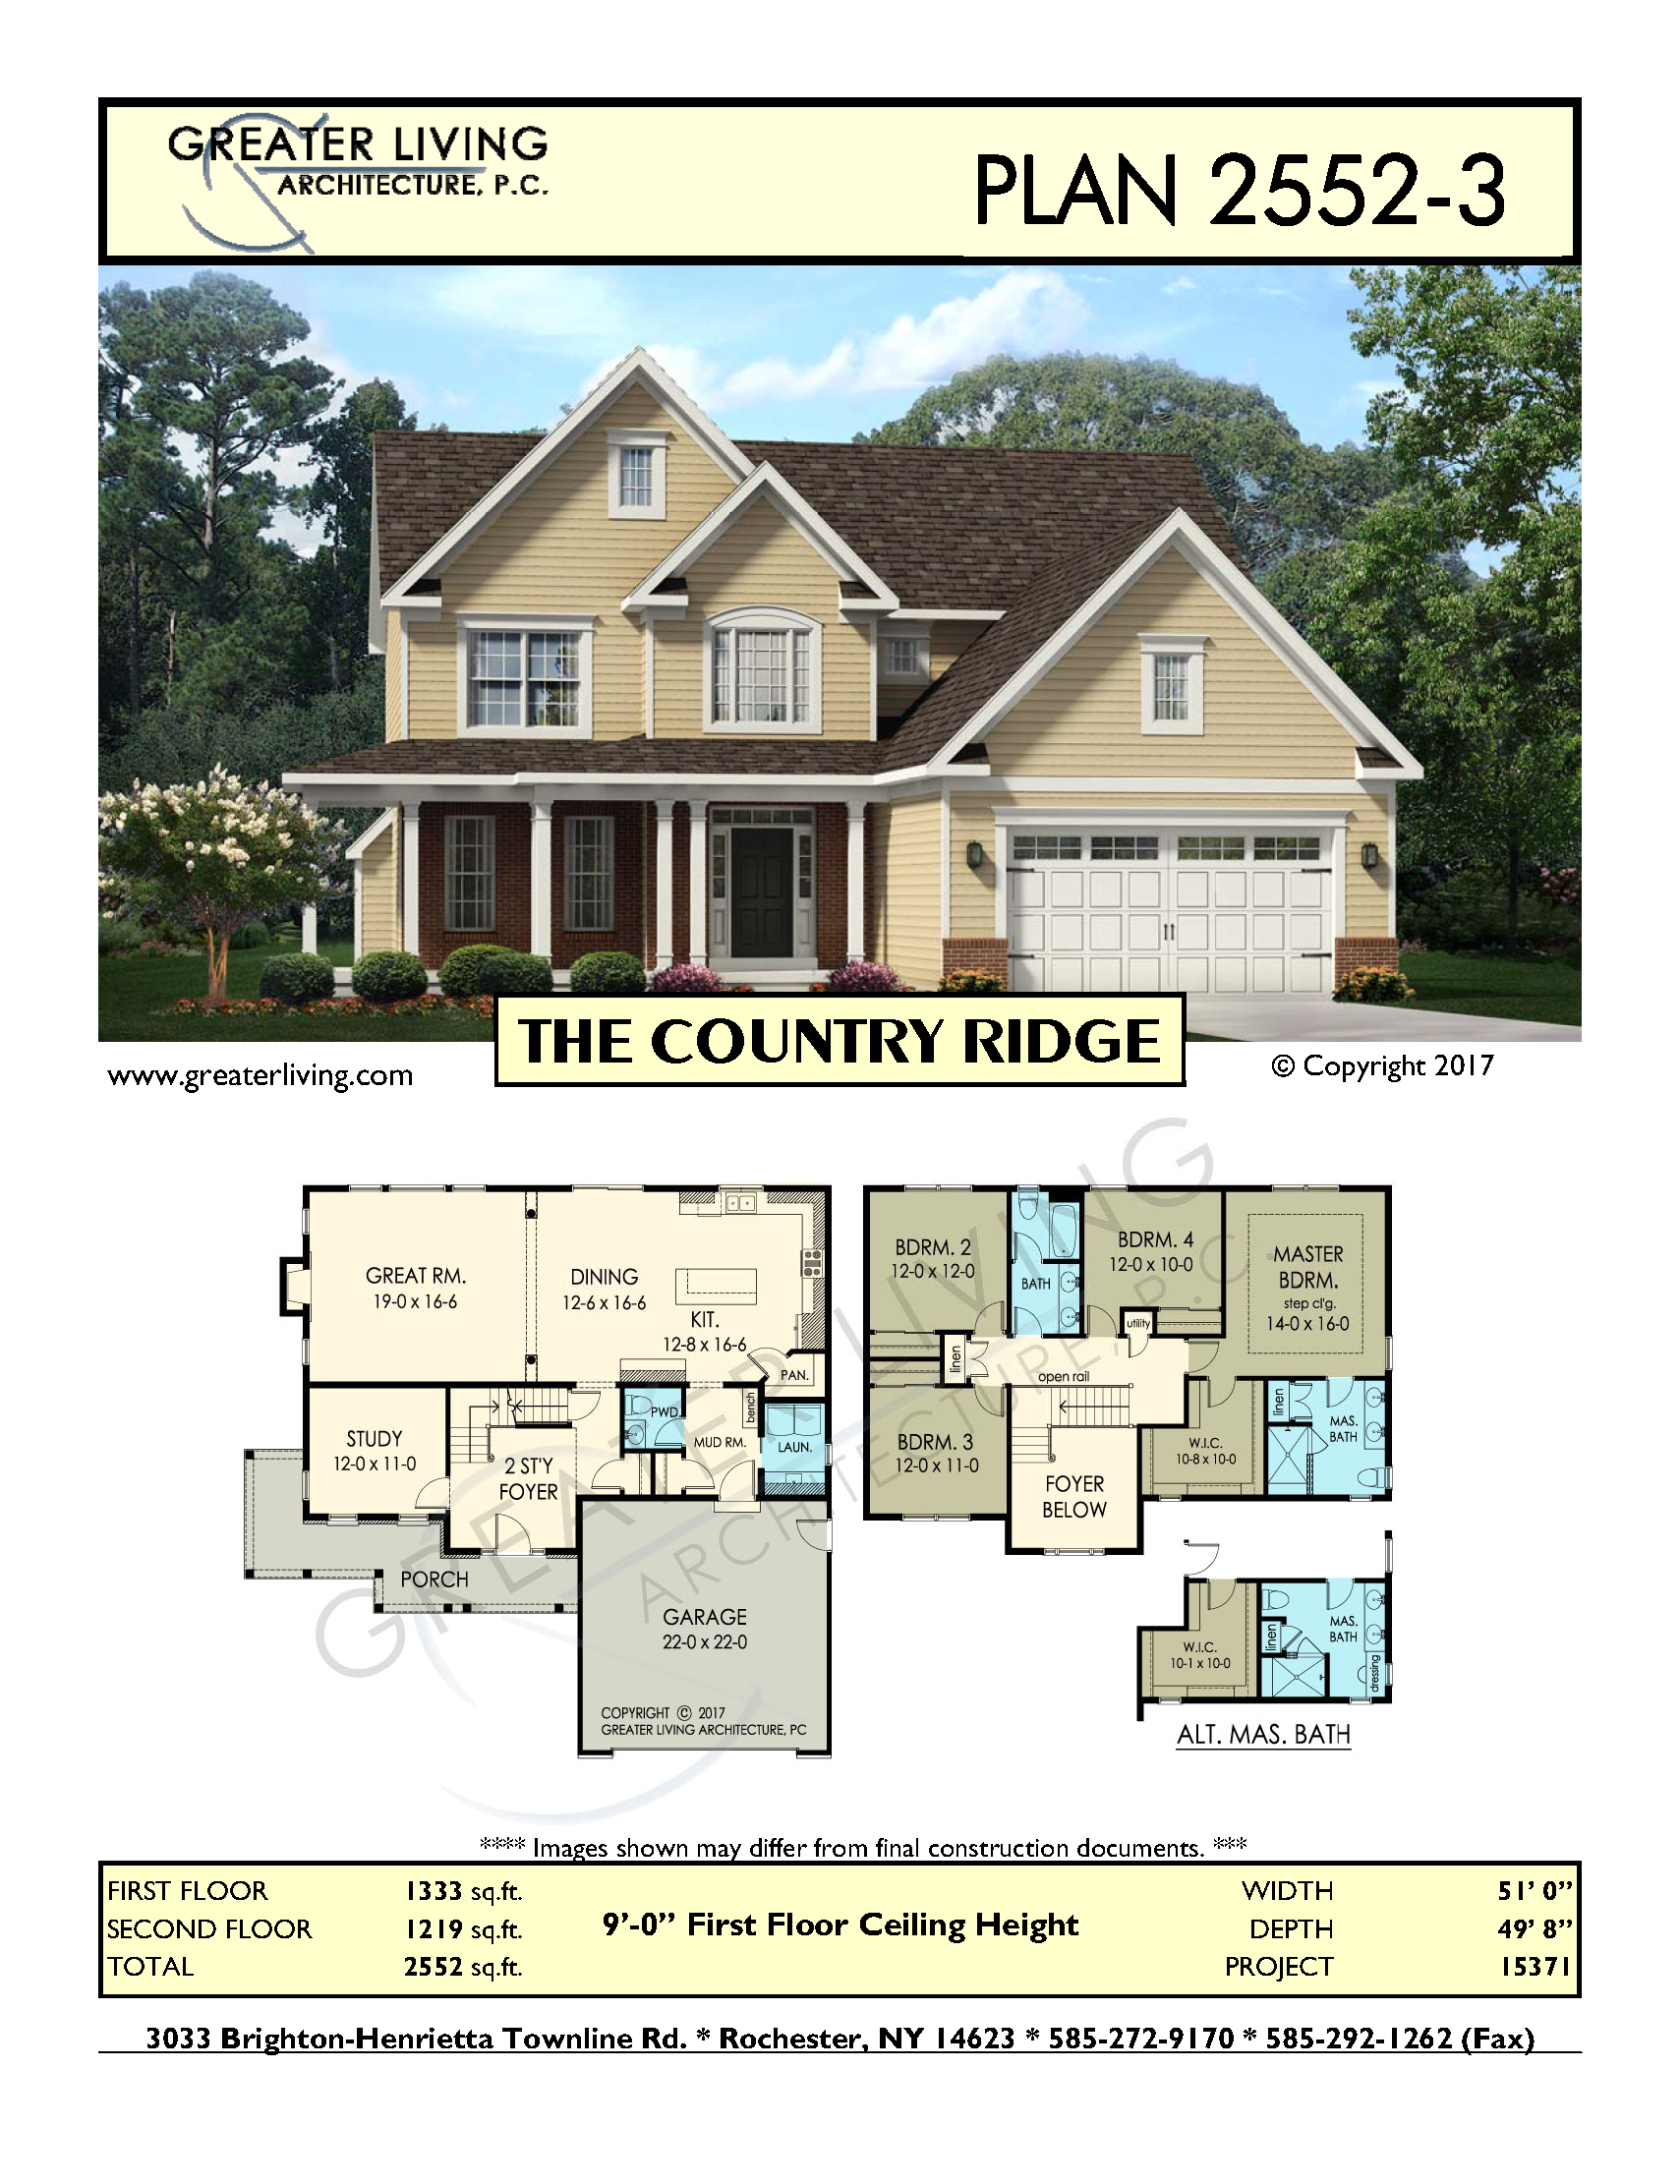 Plan 2552-3: THE COUNTRY RIDGE- Two Story House Plan - Greater ...